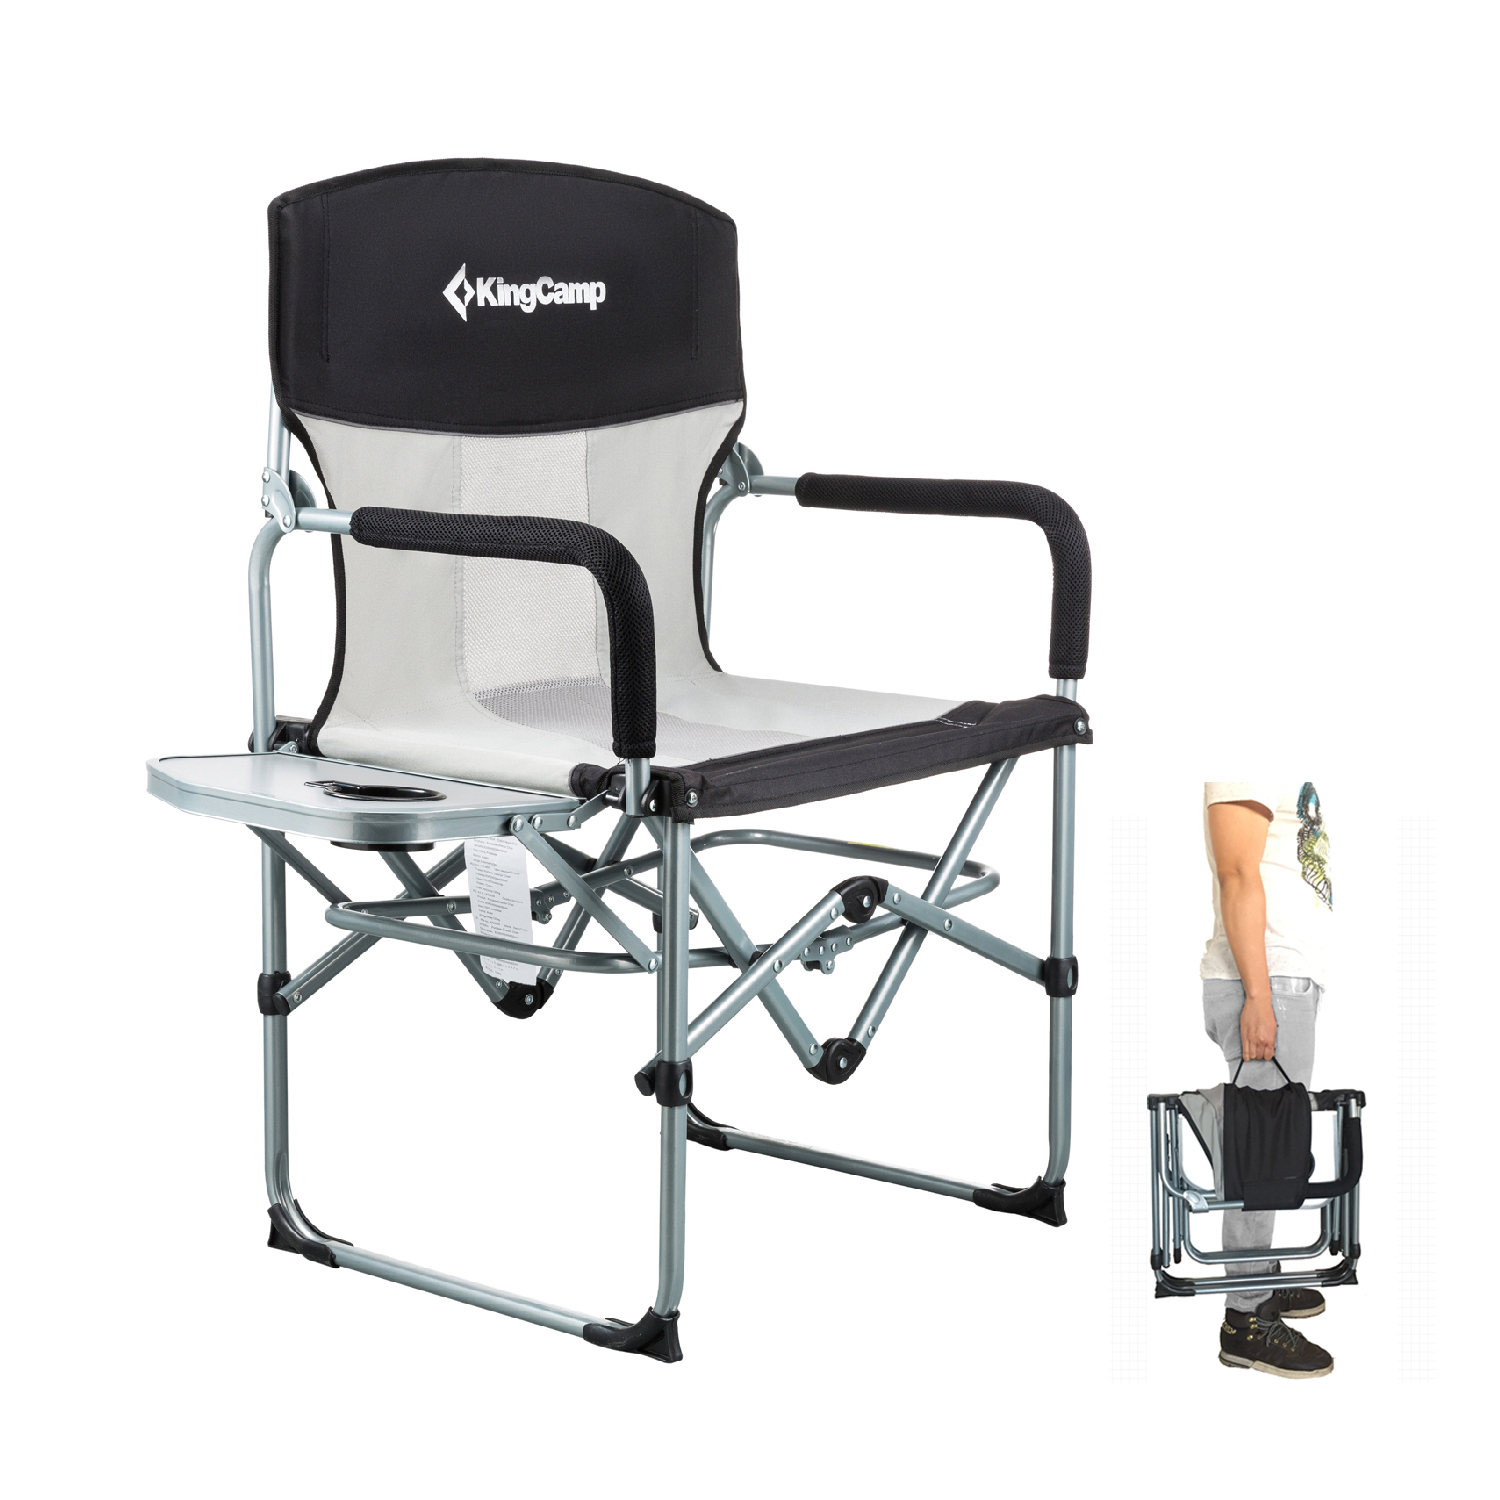 KingCamp Heavy Duty pact Folding Mesh Chair with Side Table and